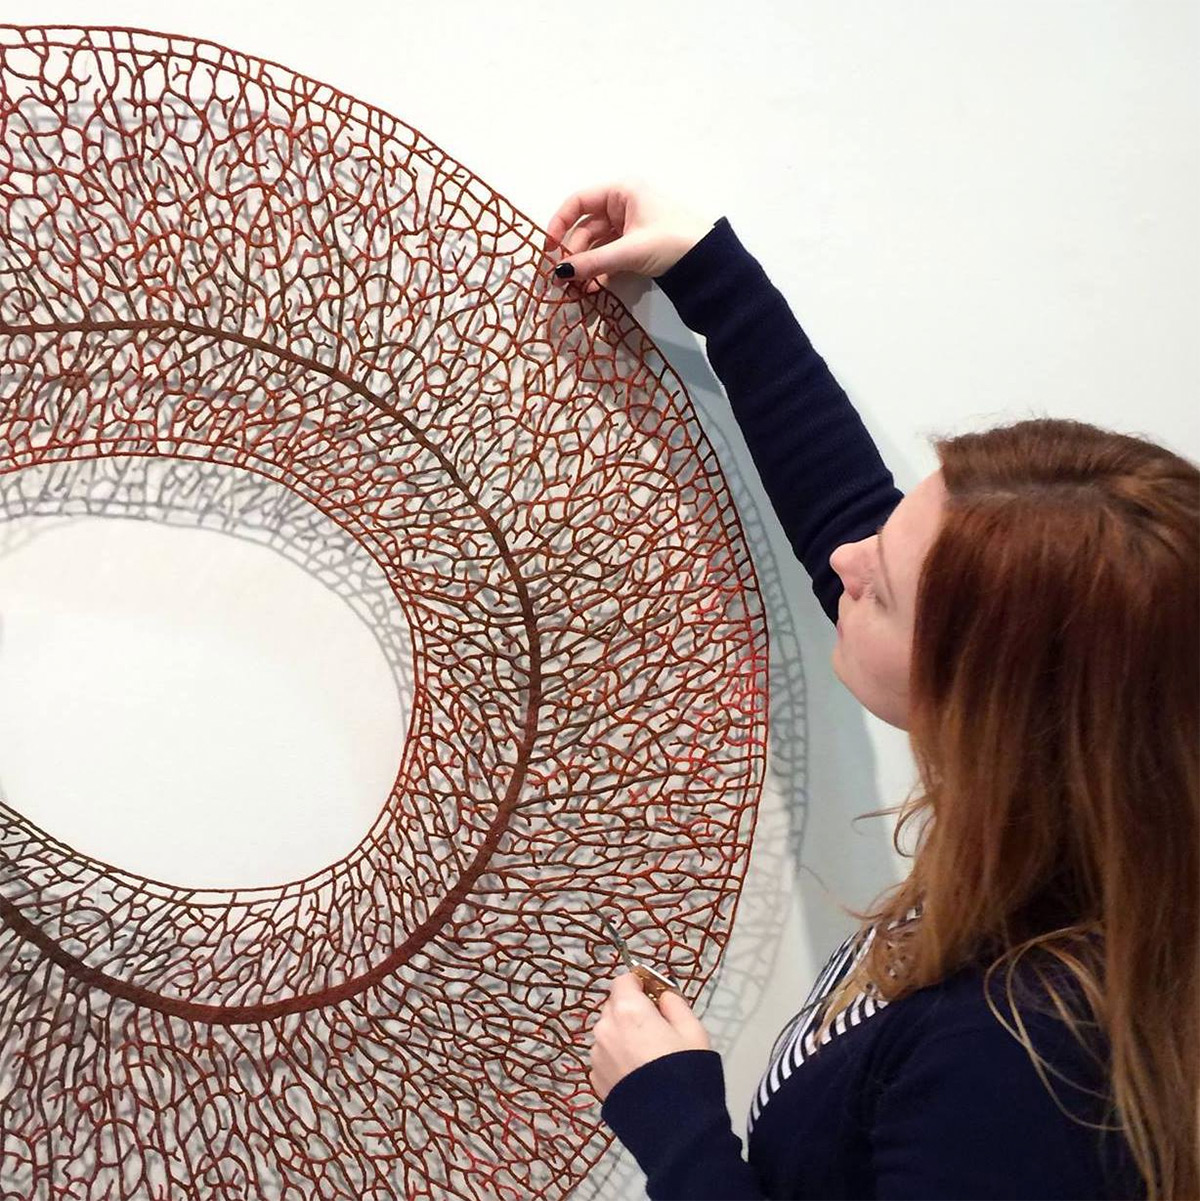 Meredith Woolnough's Embroideries Mimic Delicate Forms of Nature nature embroidery